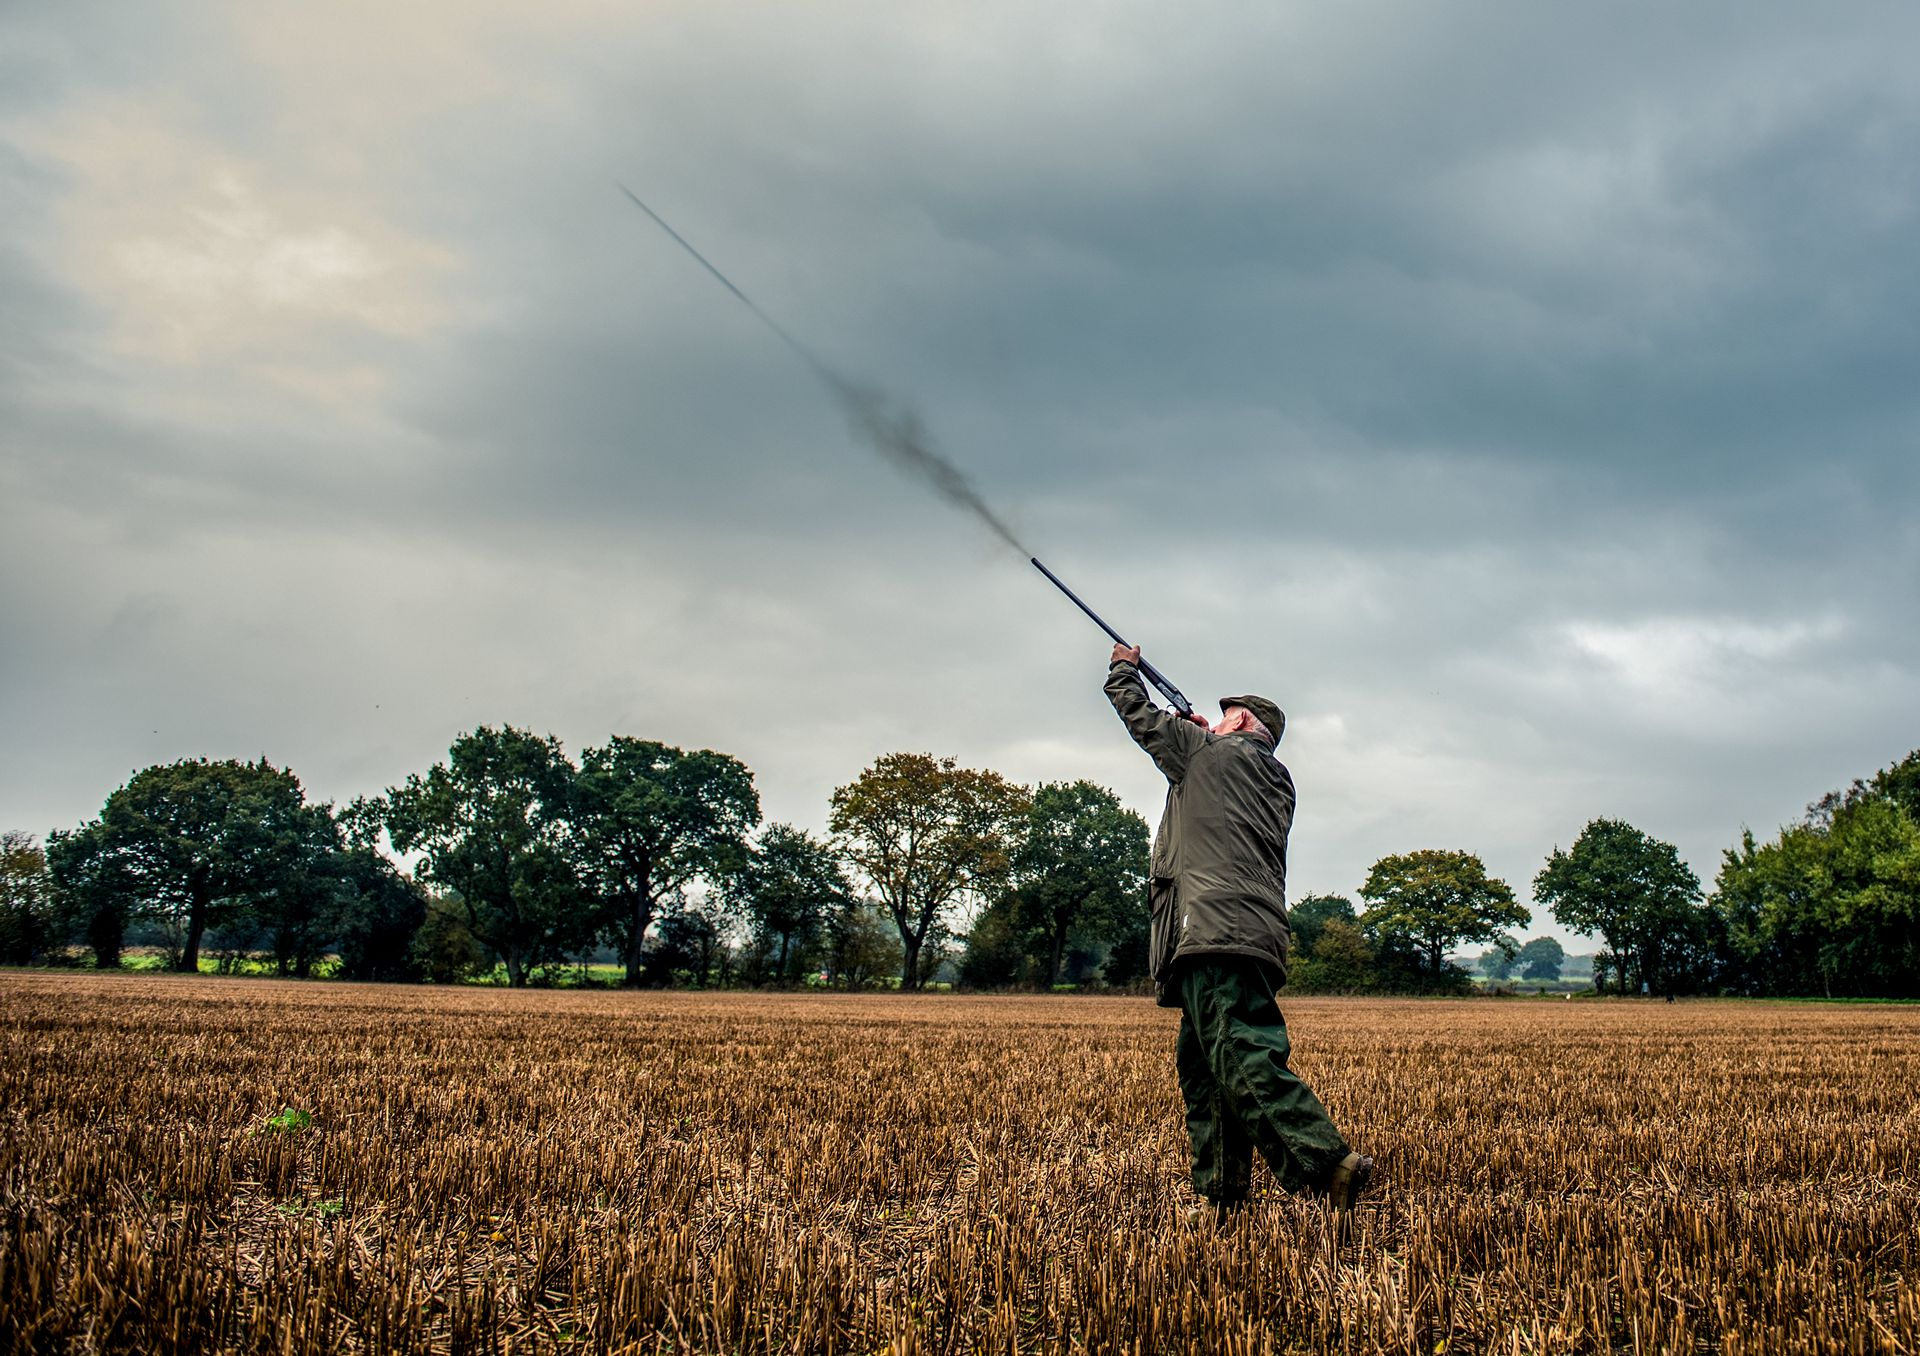 Partridge shooting producing natural, unposed shots that each gun can take away as a memorable record of their day.